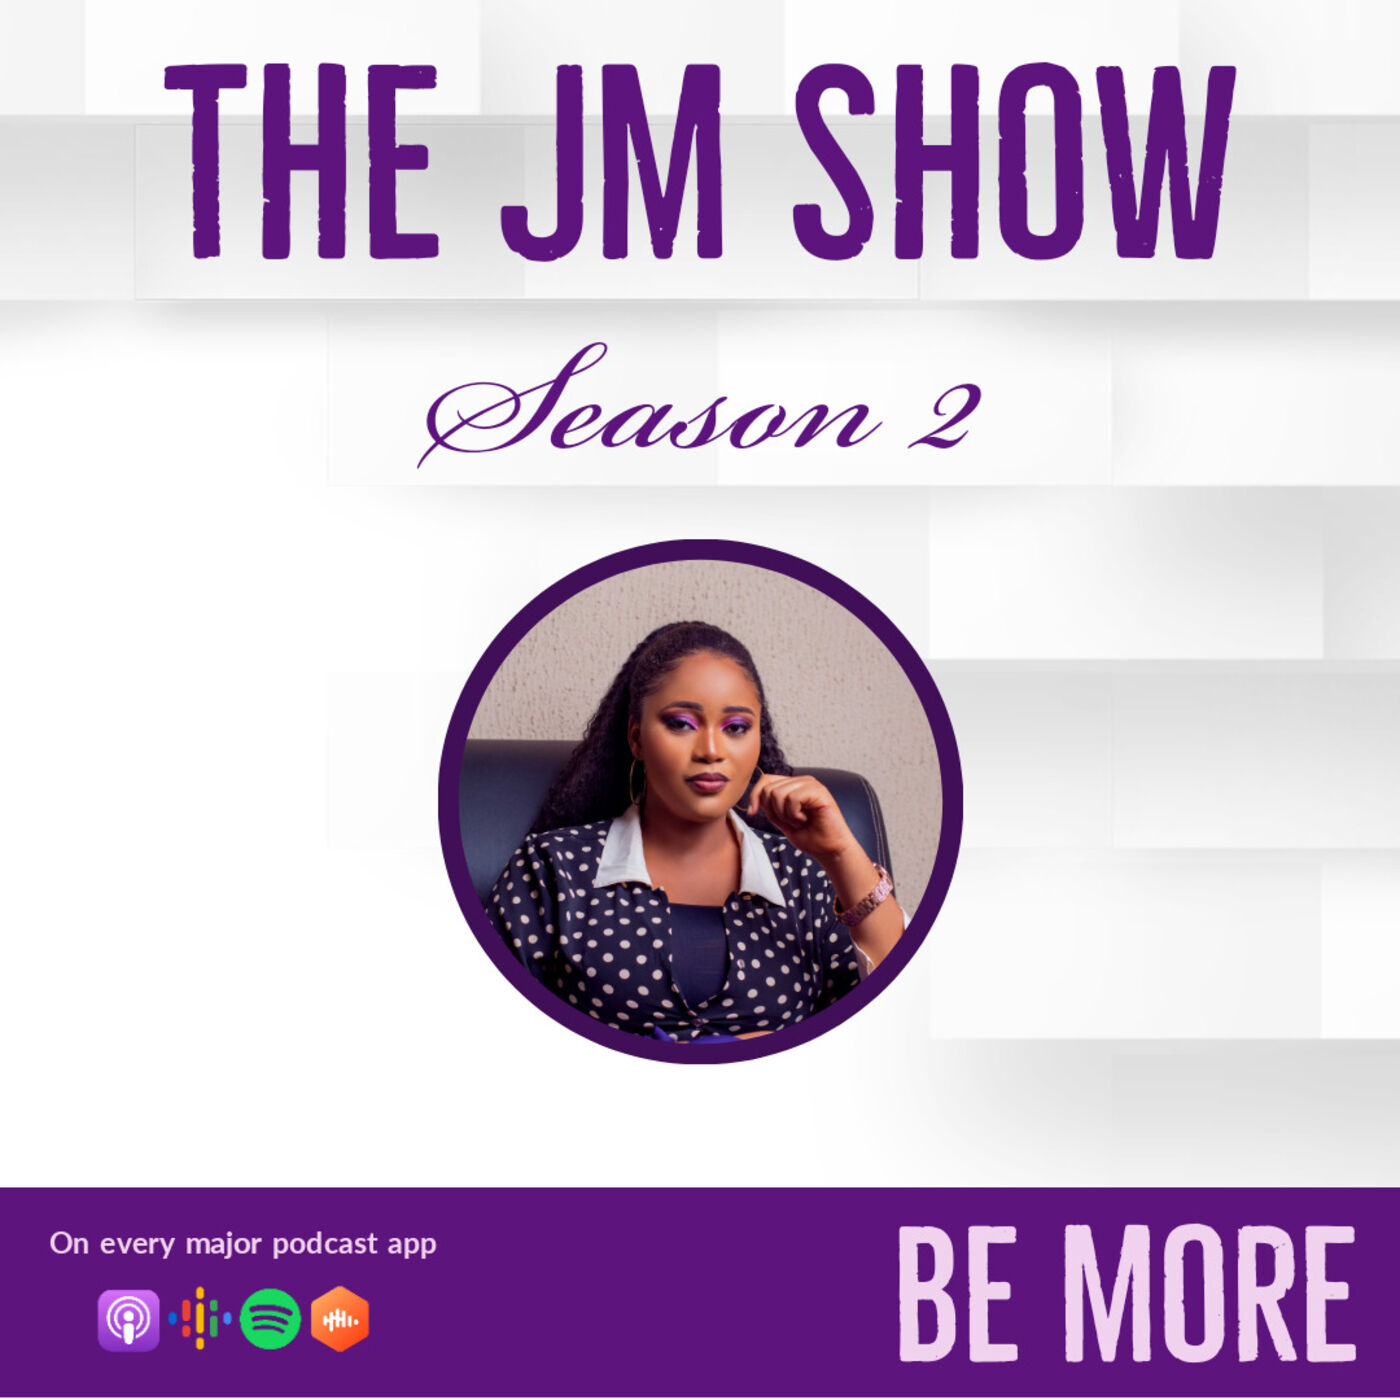 The JM show podcast